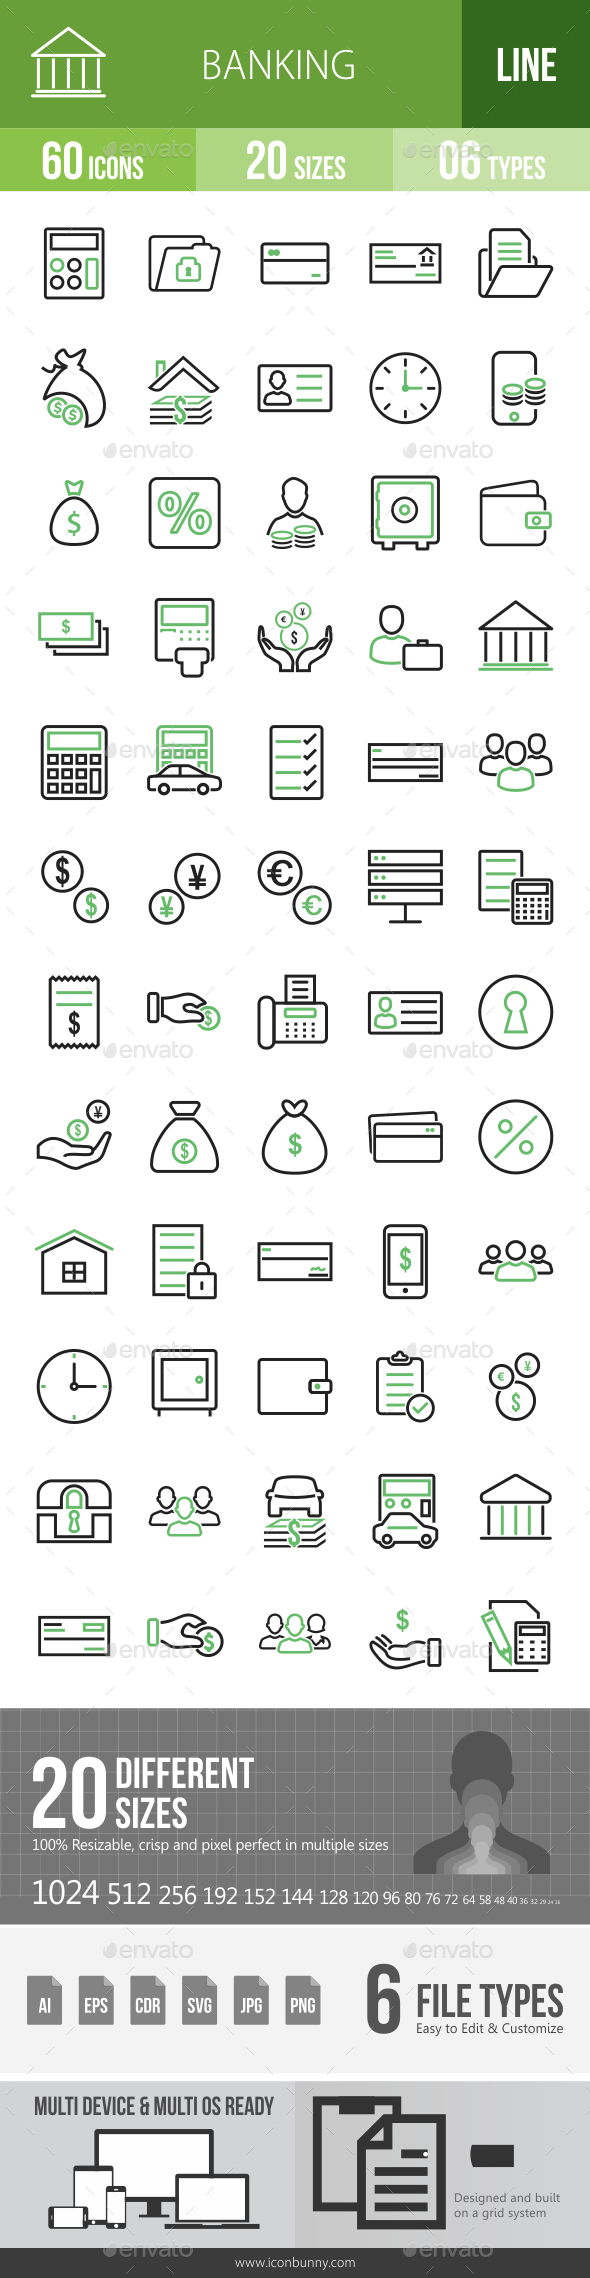 GraphicRiver 60 Banking Green & Black Line Icons 21195978